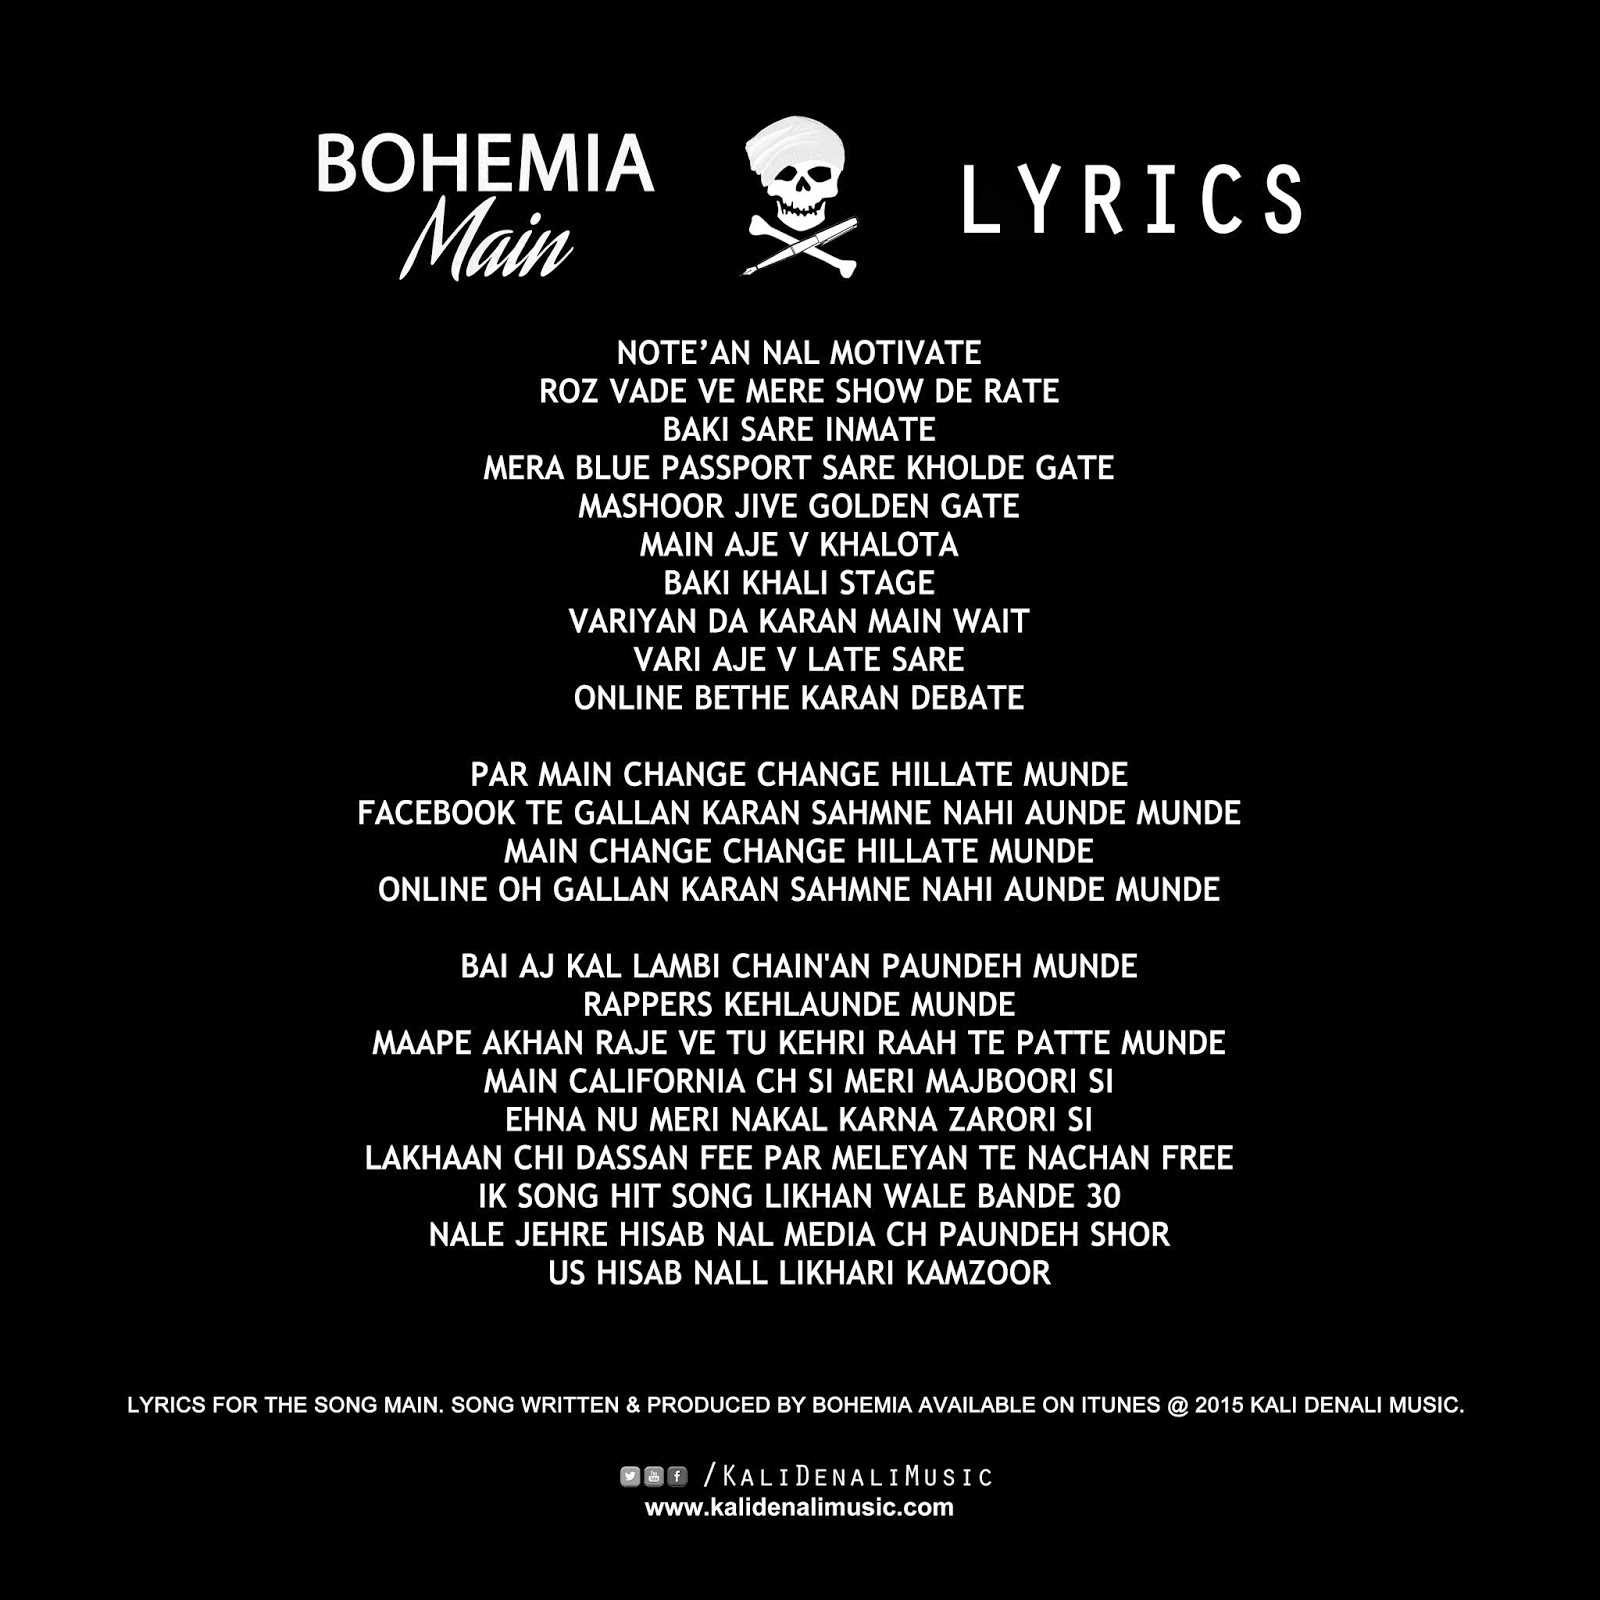 bohemia single guys Bohemian rhapsody has launched its first trailer - ahead of its release in  cinemas later this year  so who is playing the man at the centre of it all freddie  mercury  no one should interfer with our democratic process.